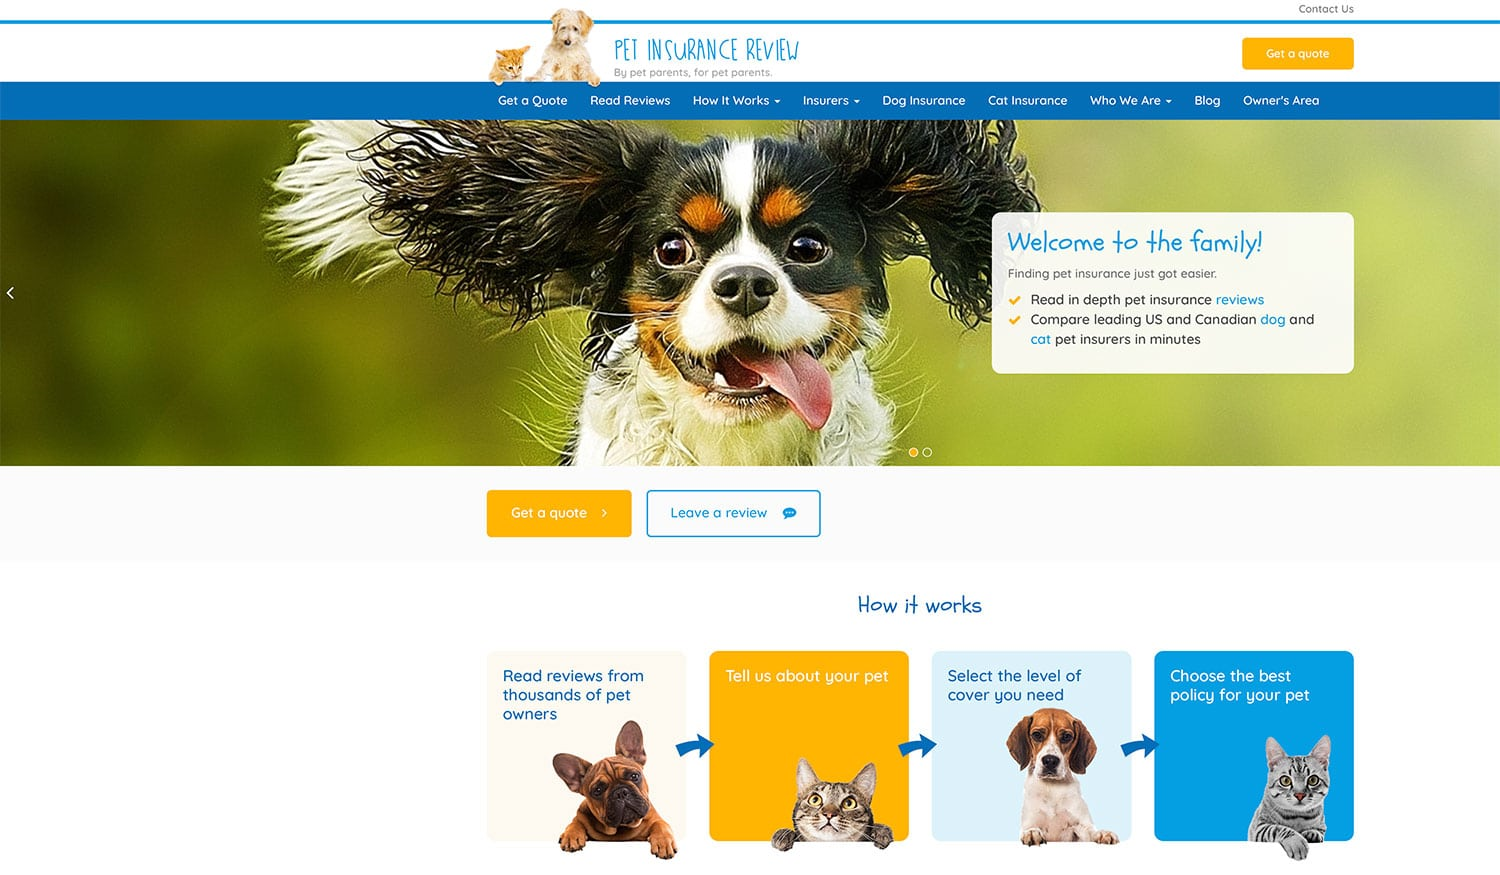 Pet Insurance Review website gets new look